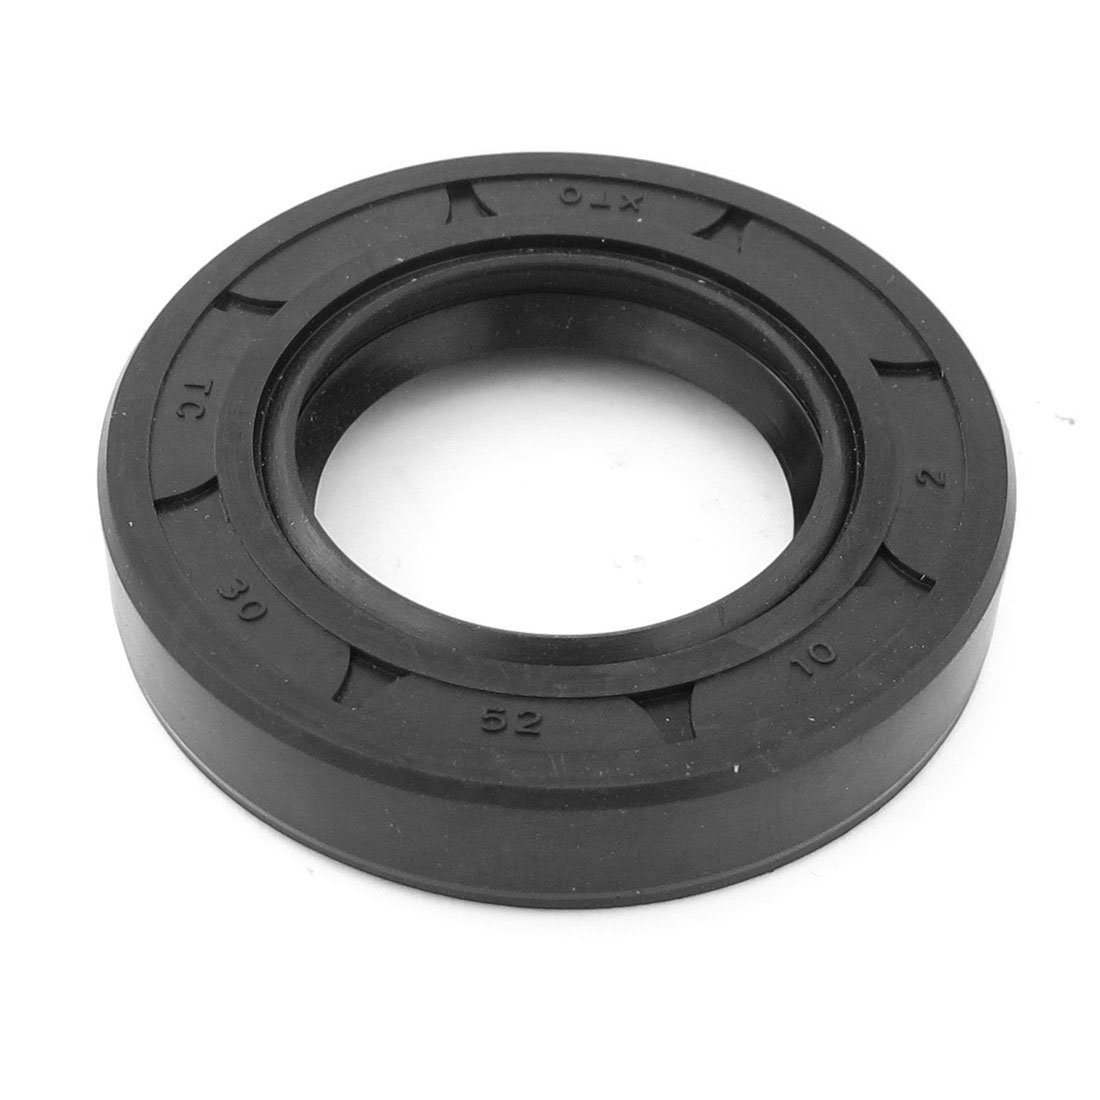 Uxcell s14072500am4739 Universal Oil Resistant Water Cooling Pump Mechanical Seal 30x52x10mm